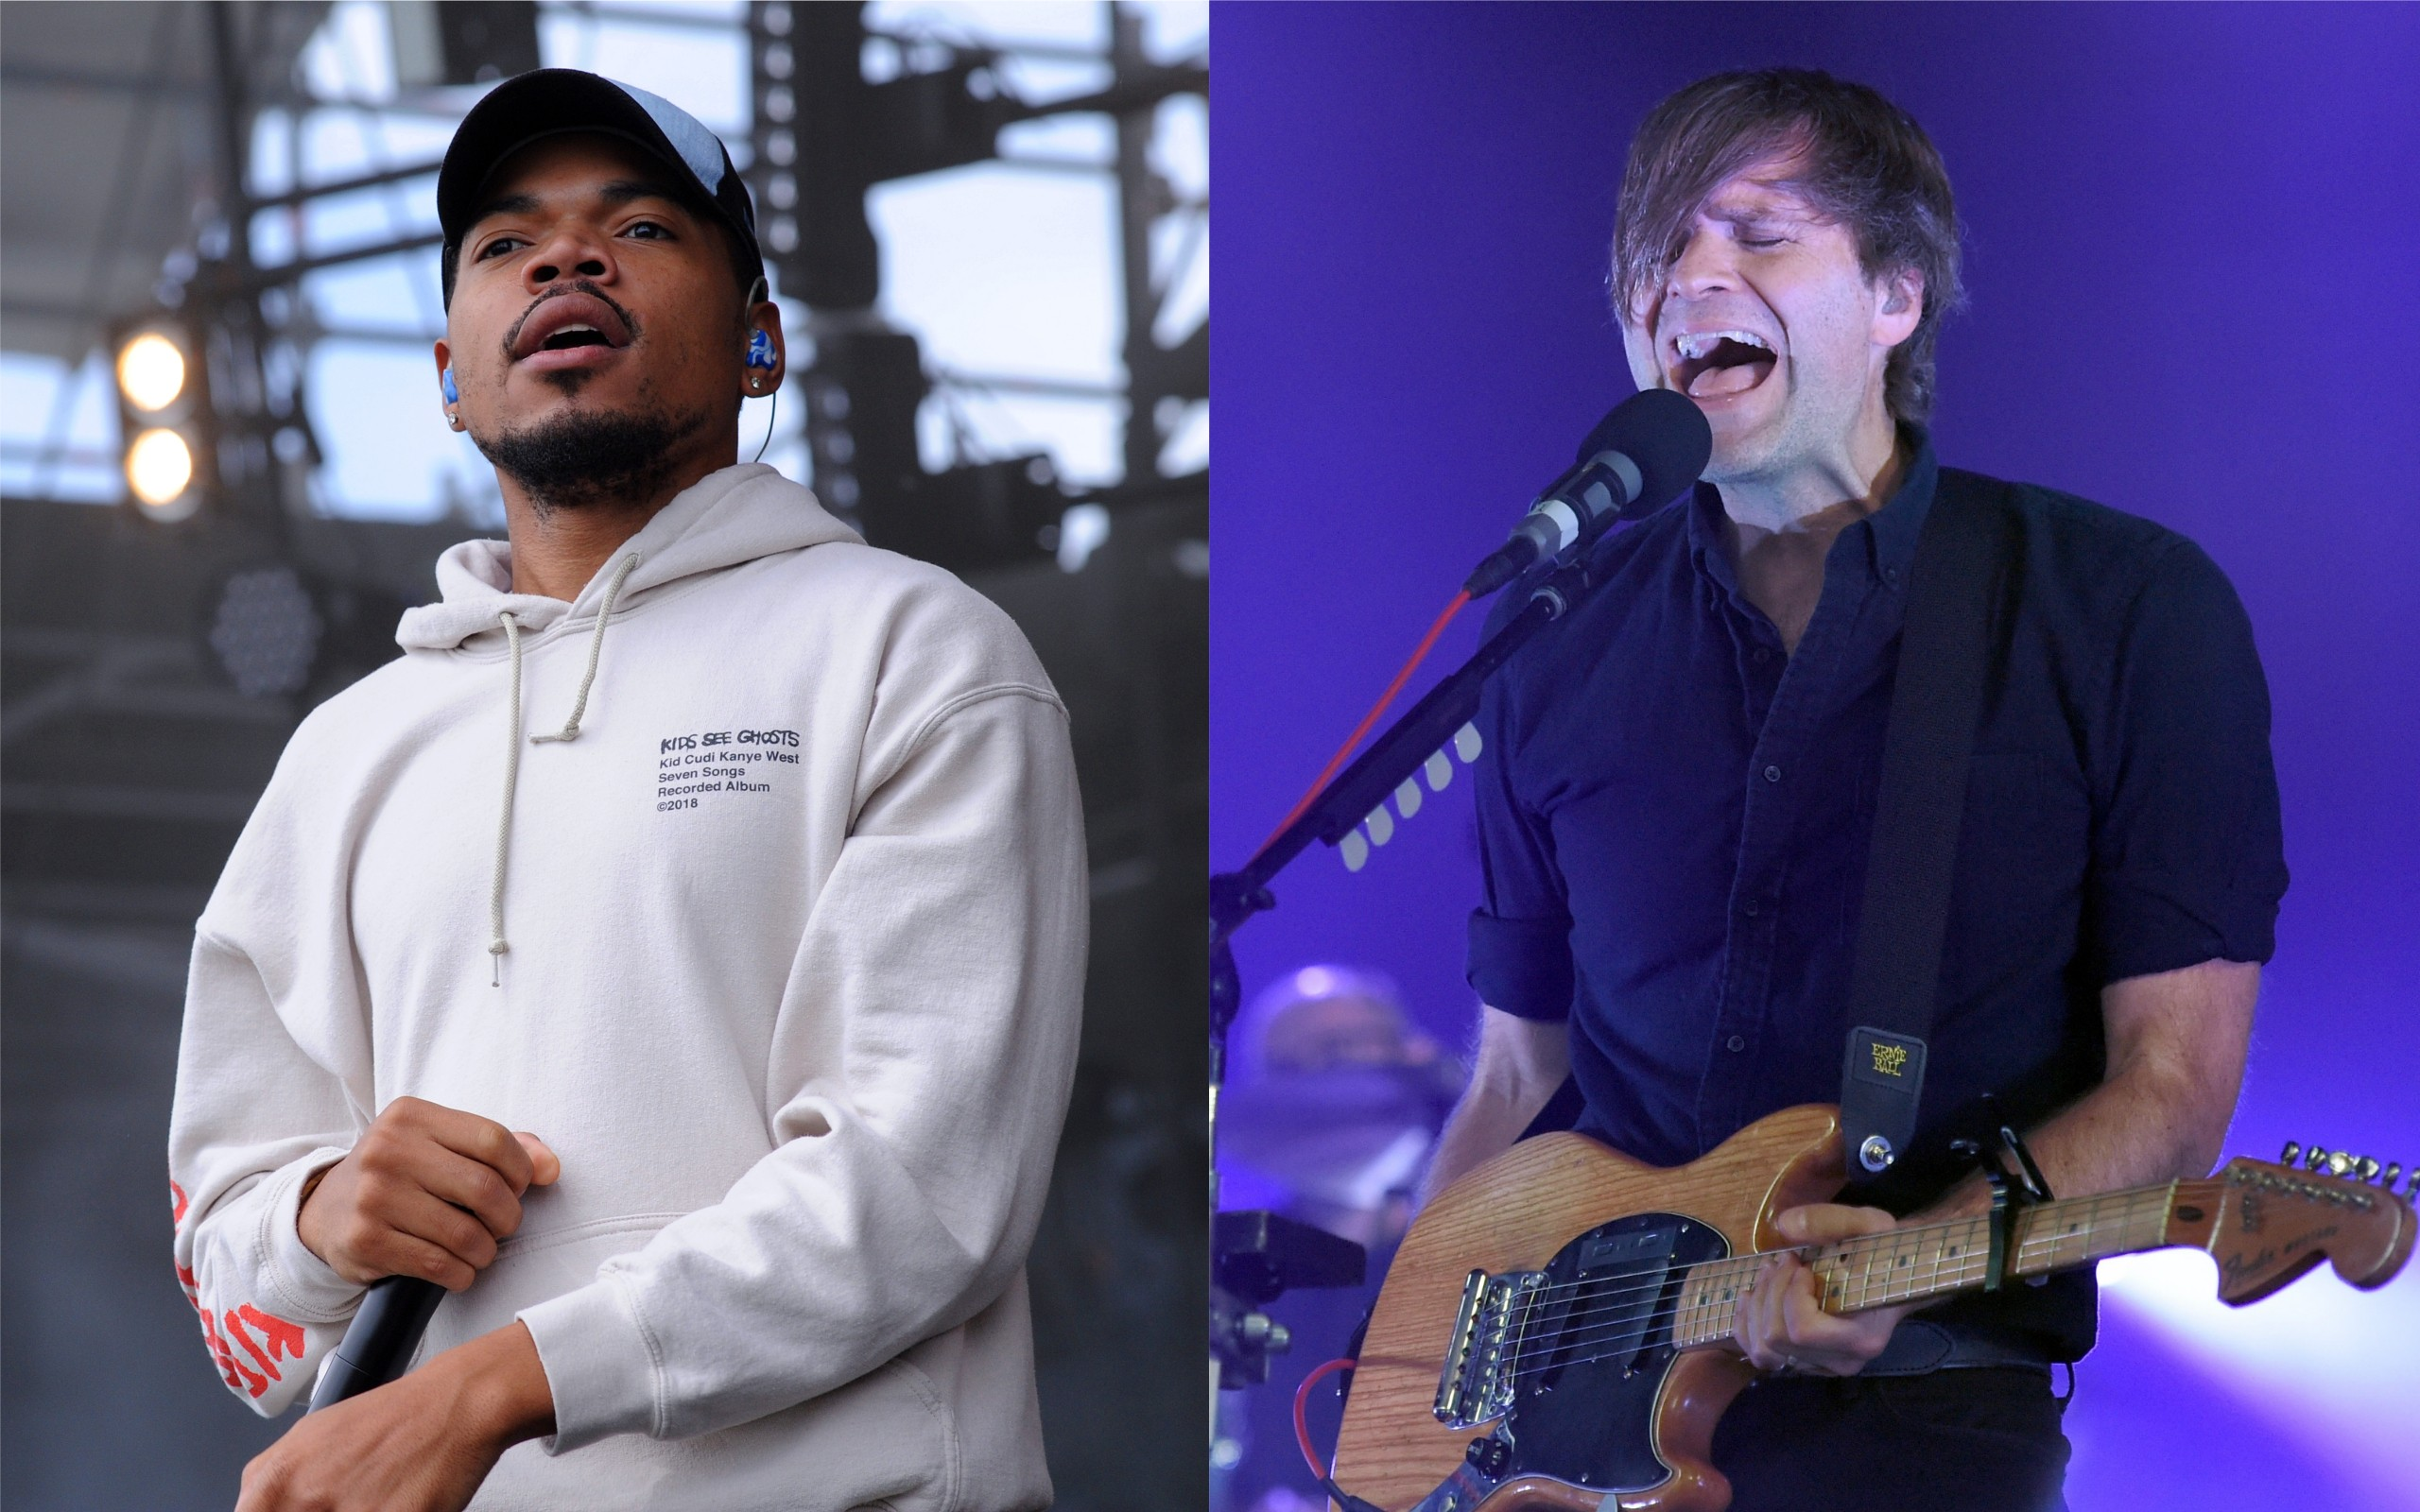 chance-the-rapper-joins-death-cab-for-cutie-for-do-you-remember-lollapalooza-2019